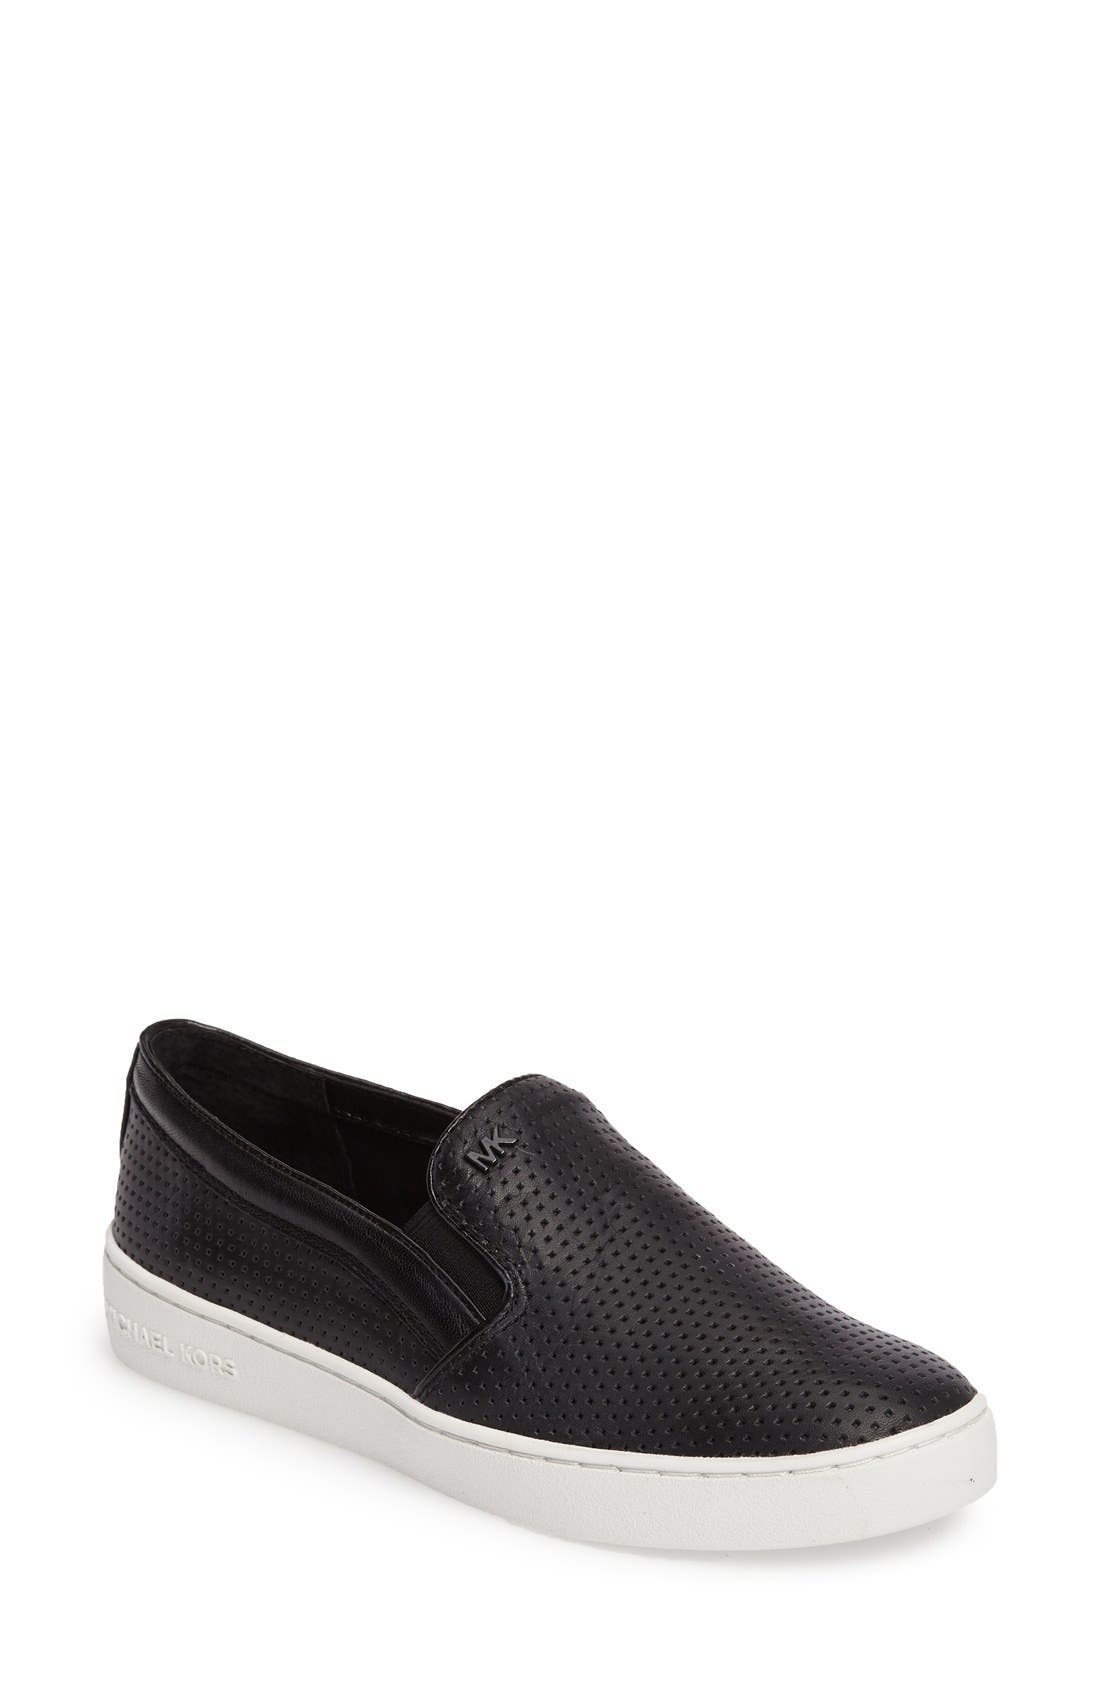 Keaton Slip-On Sneaker,                             Main thumbnail 22, color,